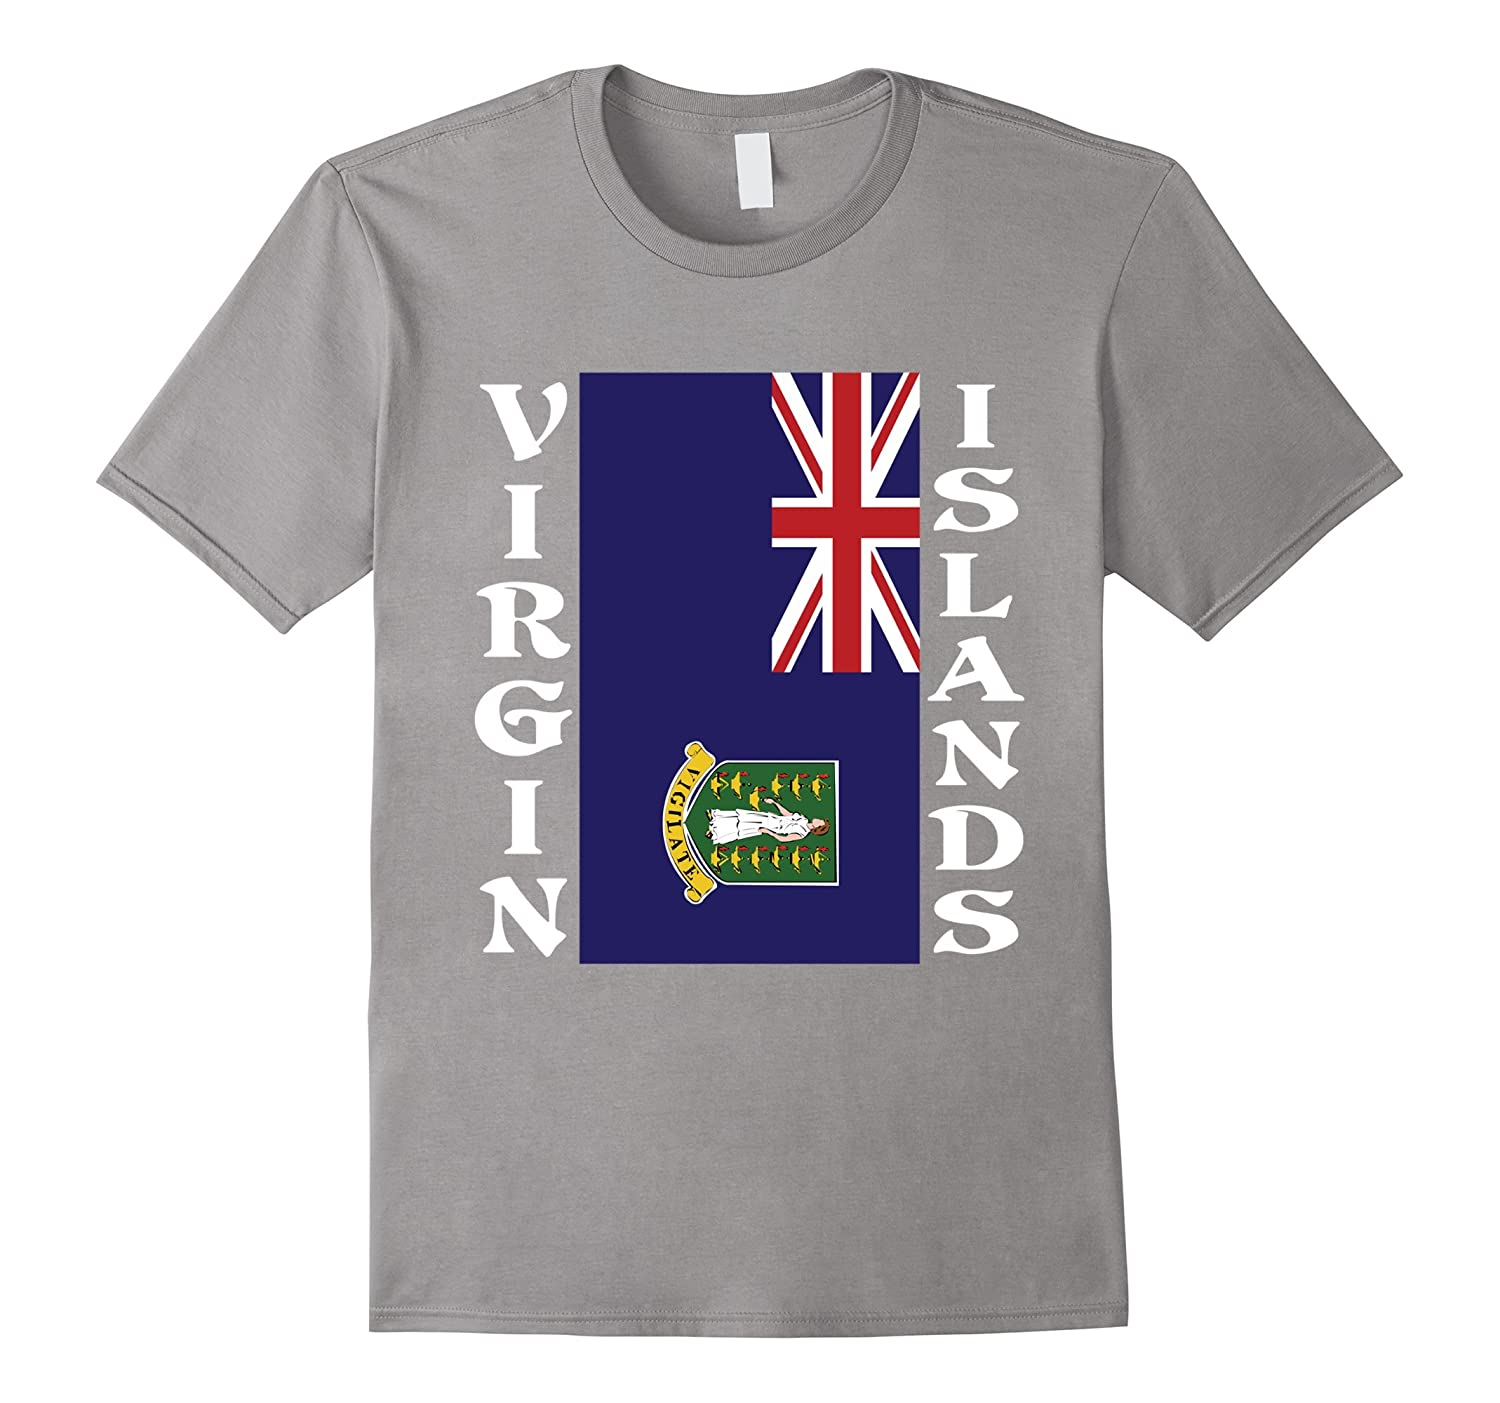 Virgin Islands UK United Kingdom Sideways Flag T-Shirt